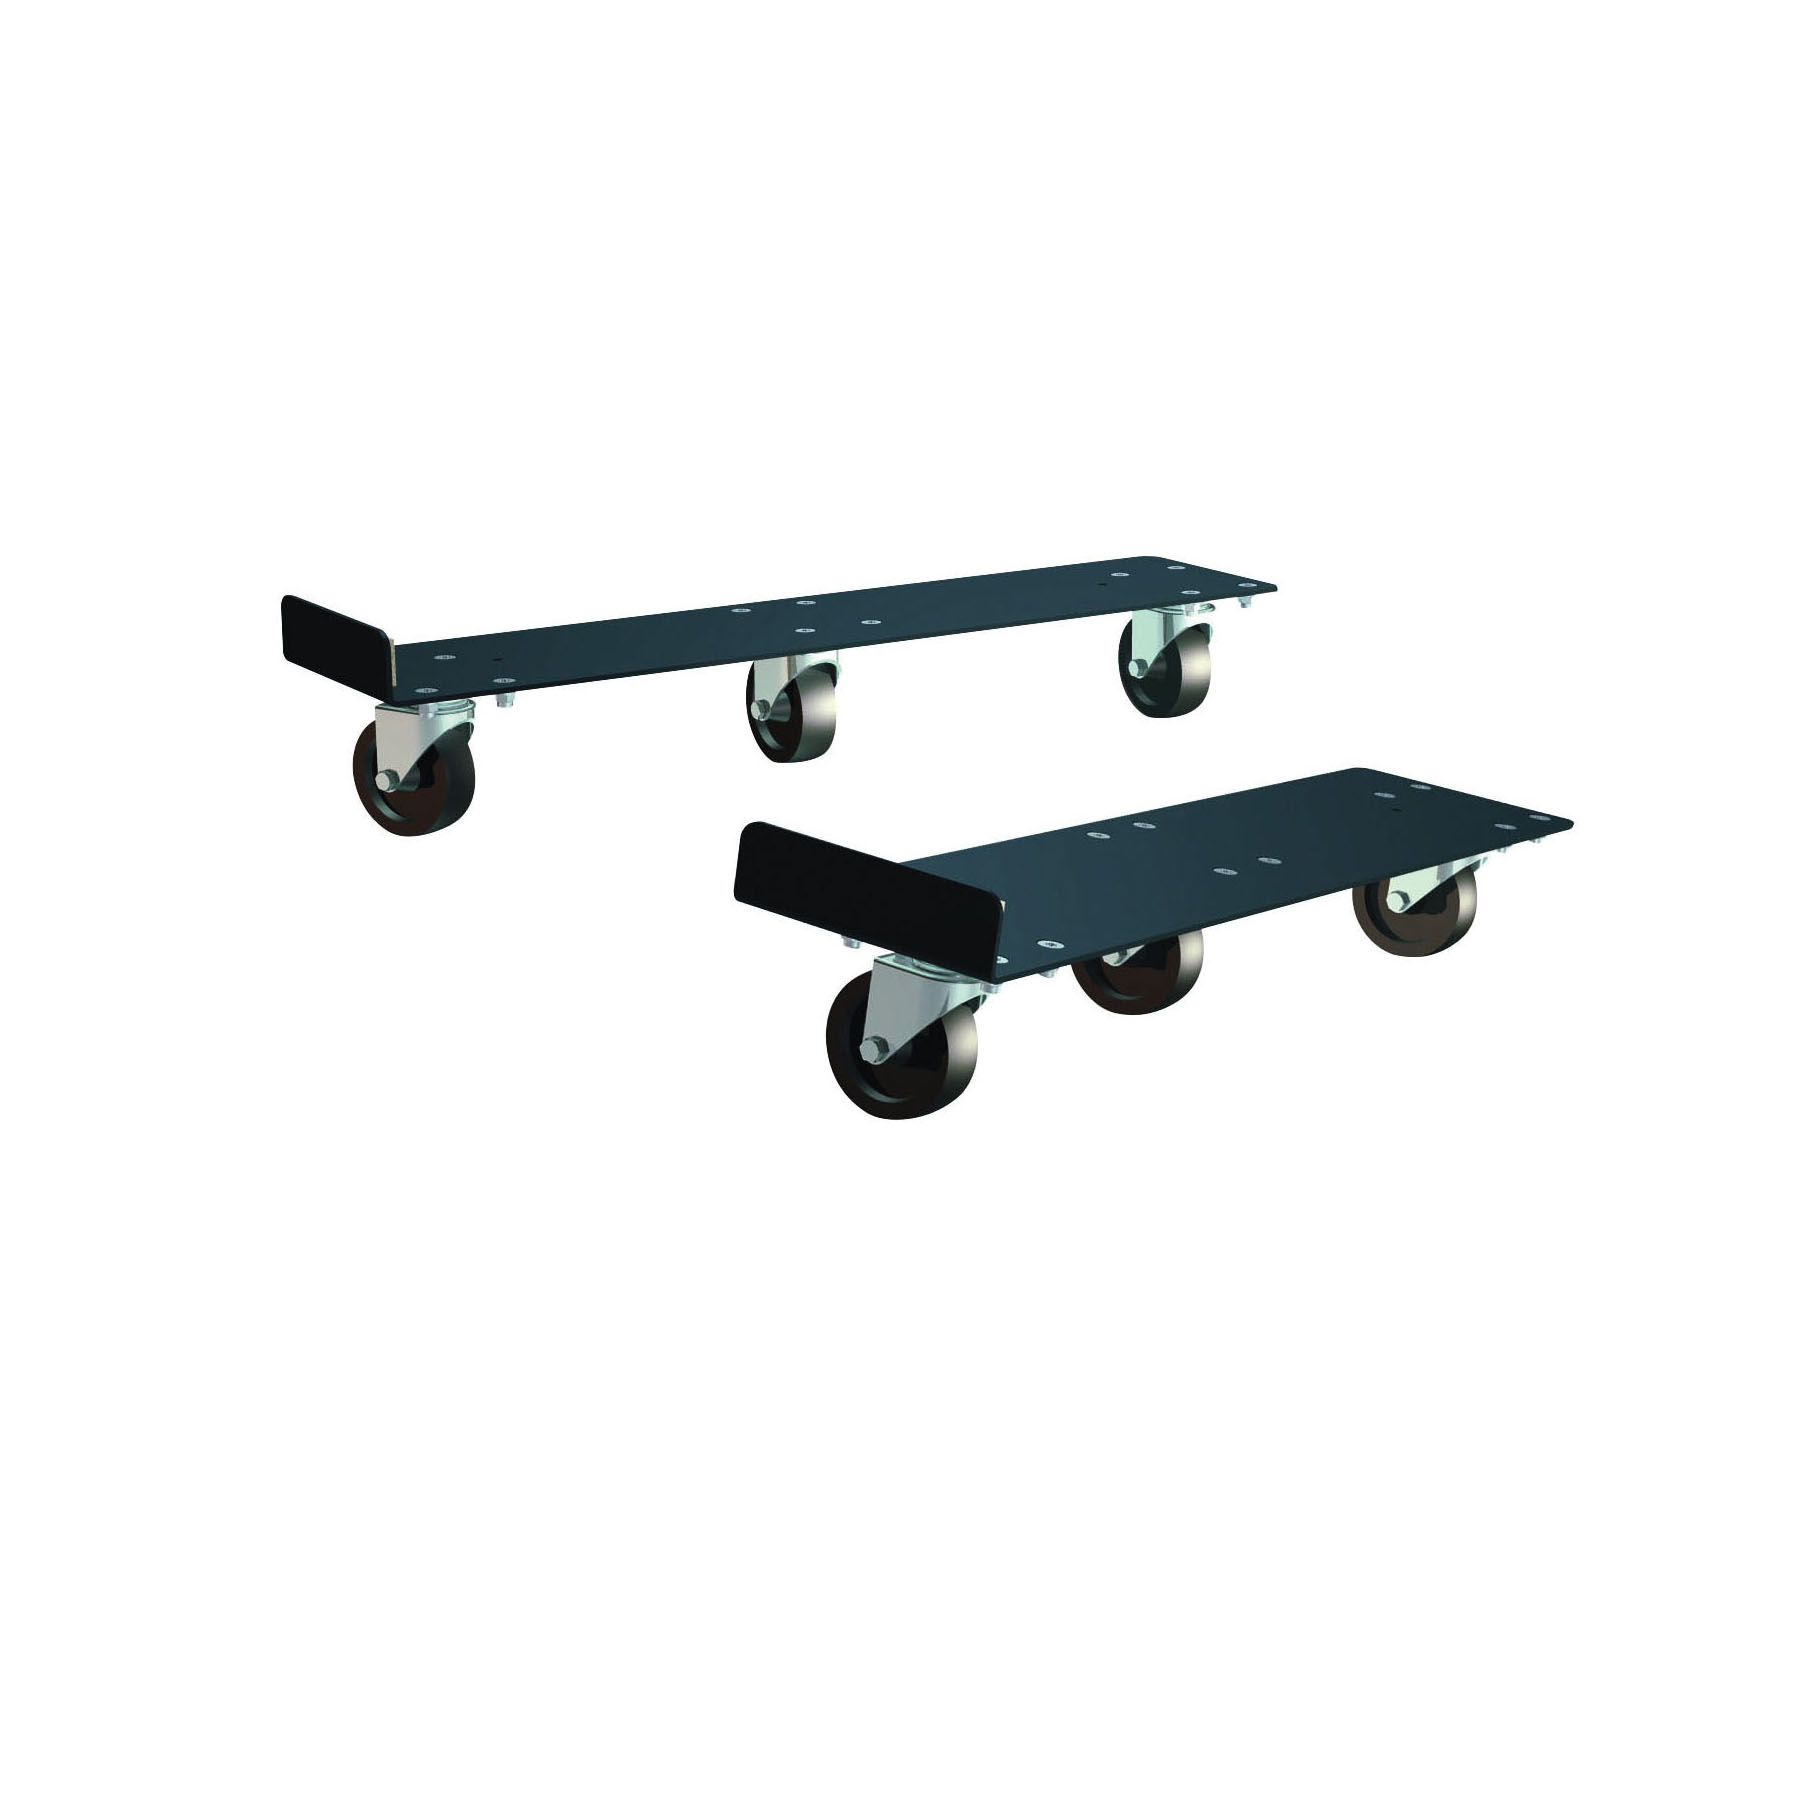 Justrite® 22638 Cabinet Mover, For Use With 30 and 45 gal 30 min/90 min Safety Cabinet, Black